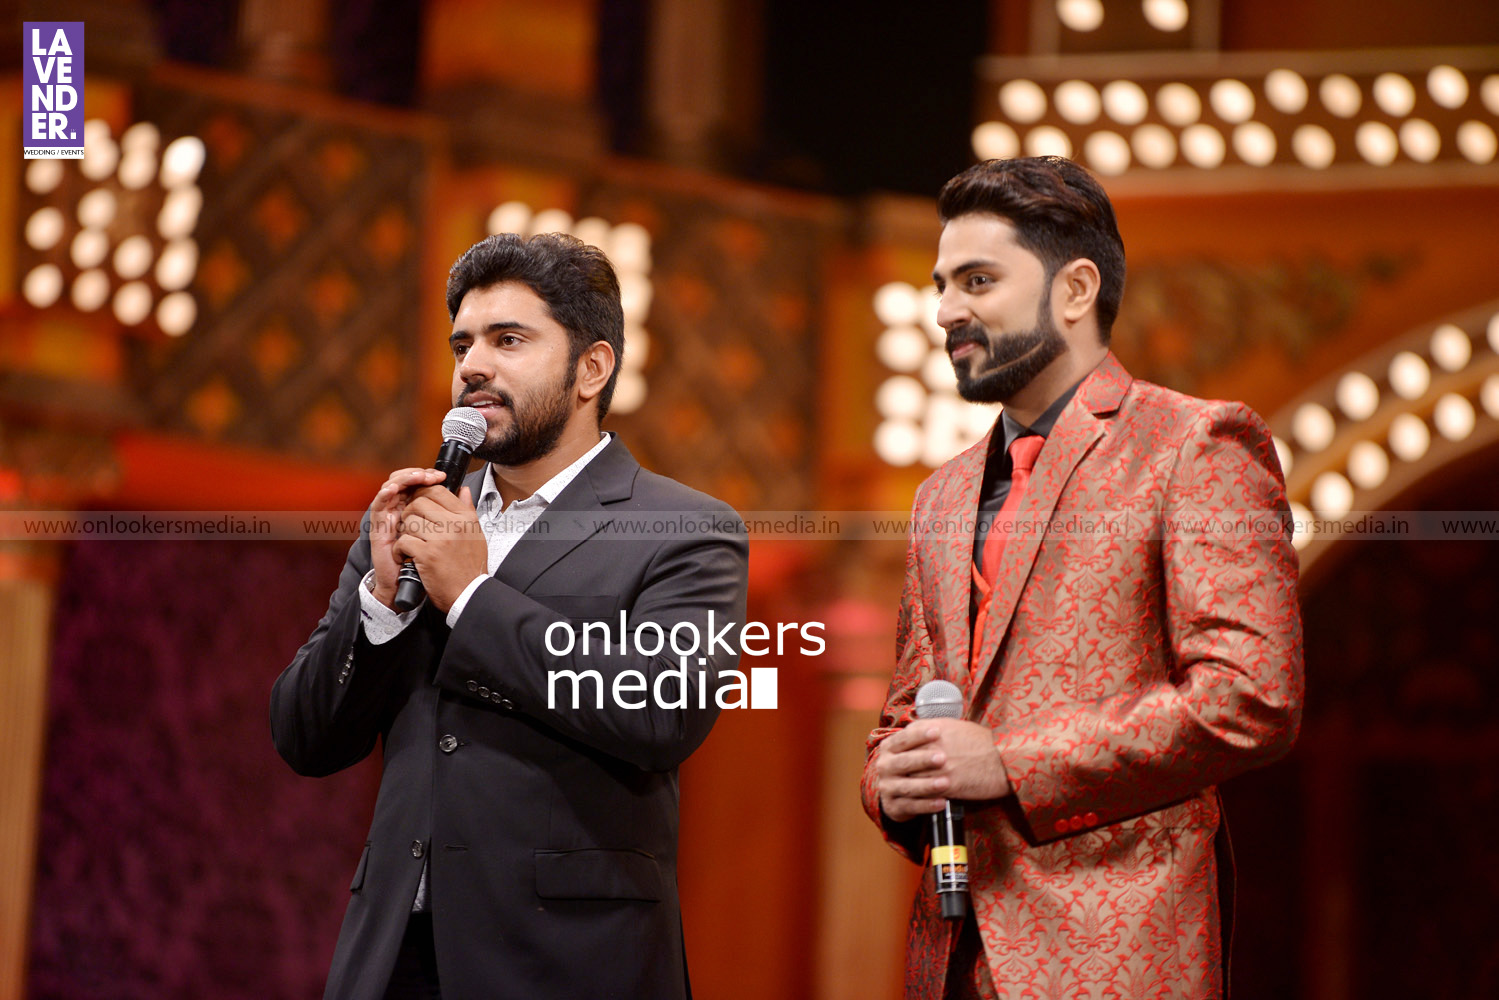 http://onlookersmedia.in/wp-content/uploads/2016/02/Nivin-Pauly-at-Asianet-Film-Award-2016-27.jpg